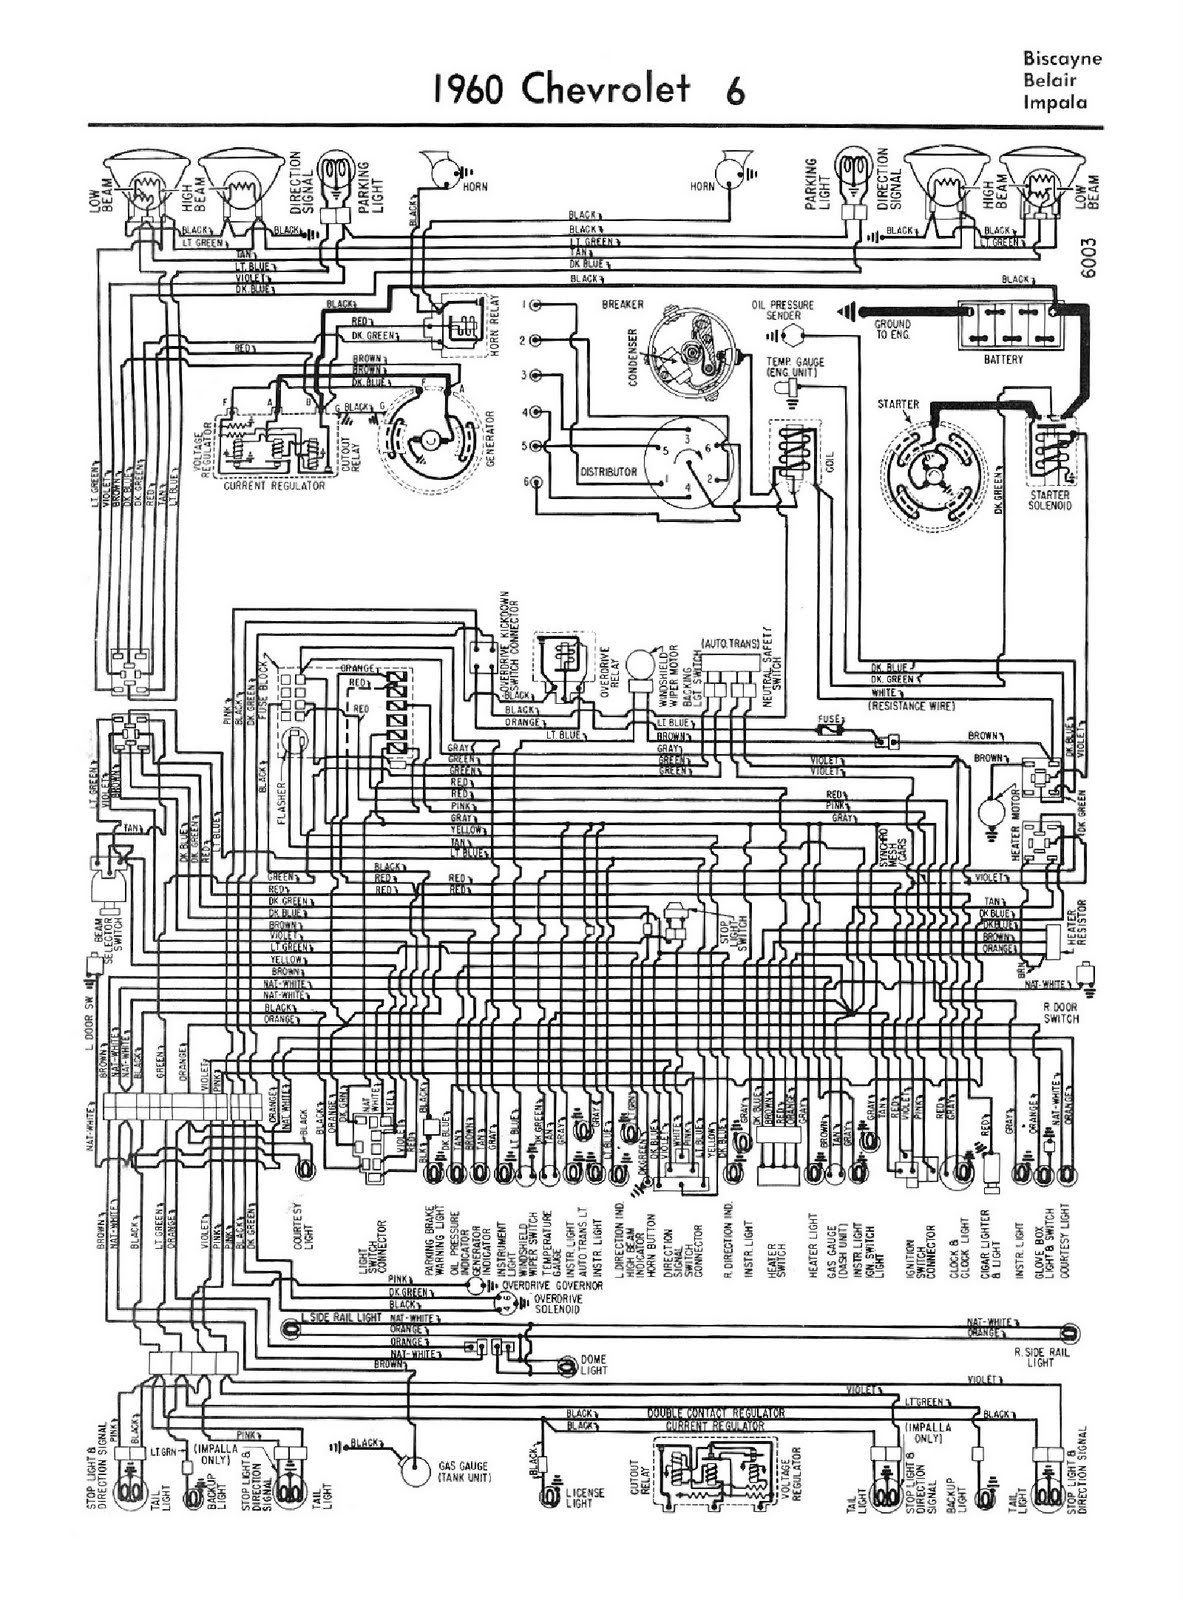 1960_Chevy_V6_Biscayne_Belair_Impala free auto wiring diagram 1960 chevrolet 6 biscayne, belair, or 1960 chevy impala wiring diagram at crackthecode.co